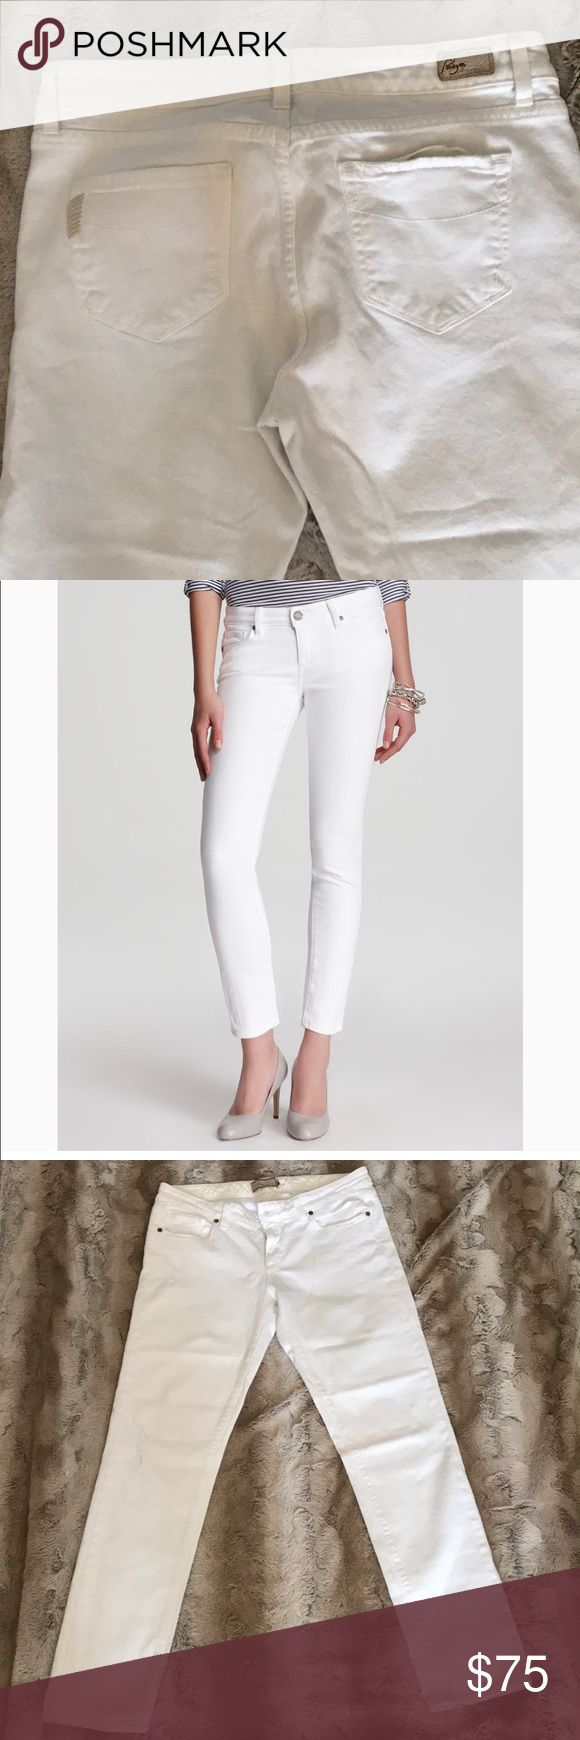 """Paige Skyline Ankle Peg Jeans in White White skinny peg jeans in white with some random intentional distressing . Zip fly closure. Belt loops and five pocket styling. 98% cotton 2% spandex. 28.5"""" inseam. 8"""" rise. 14.5"""" across waistband laying flat. I found one small spot on the right leg as shown in the photo . I haven't tried to remove it . It's hardly noticeable but please be aware . Paige Jeans Jeans Skinny"""